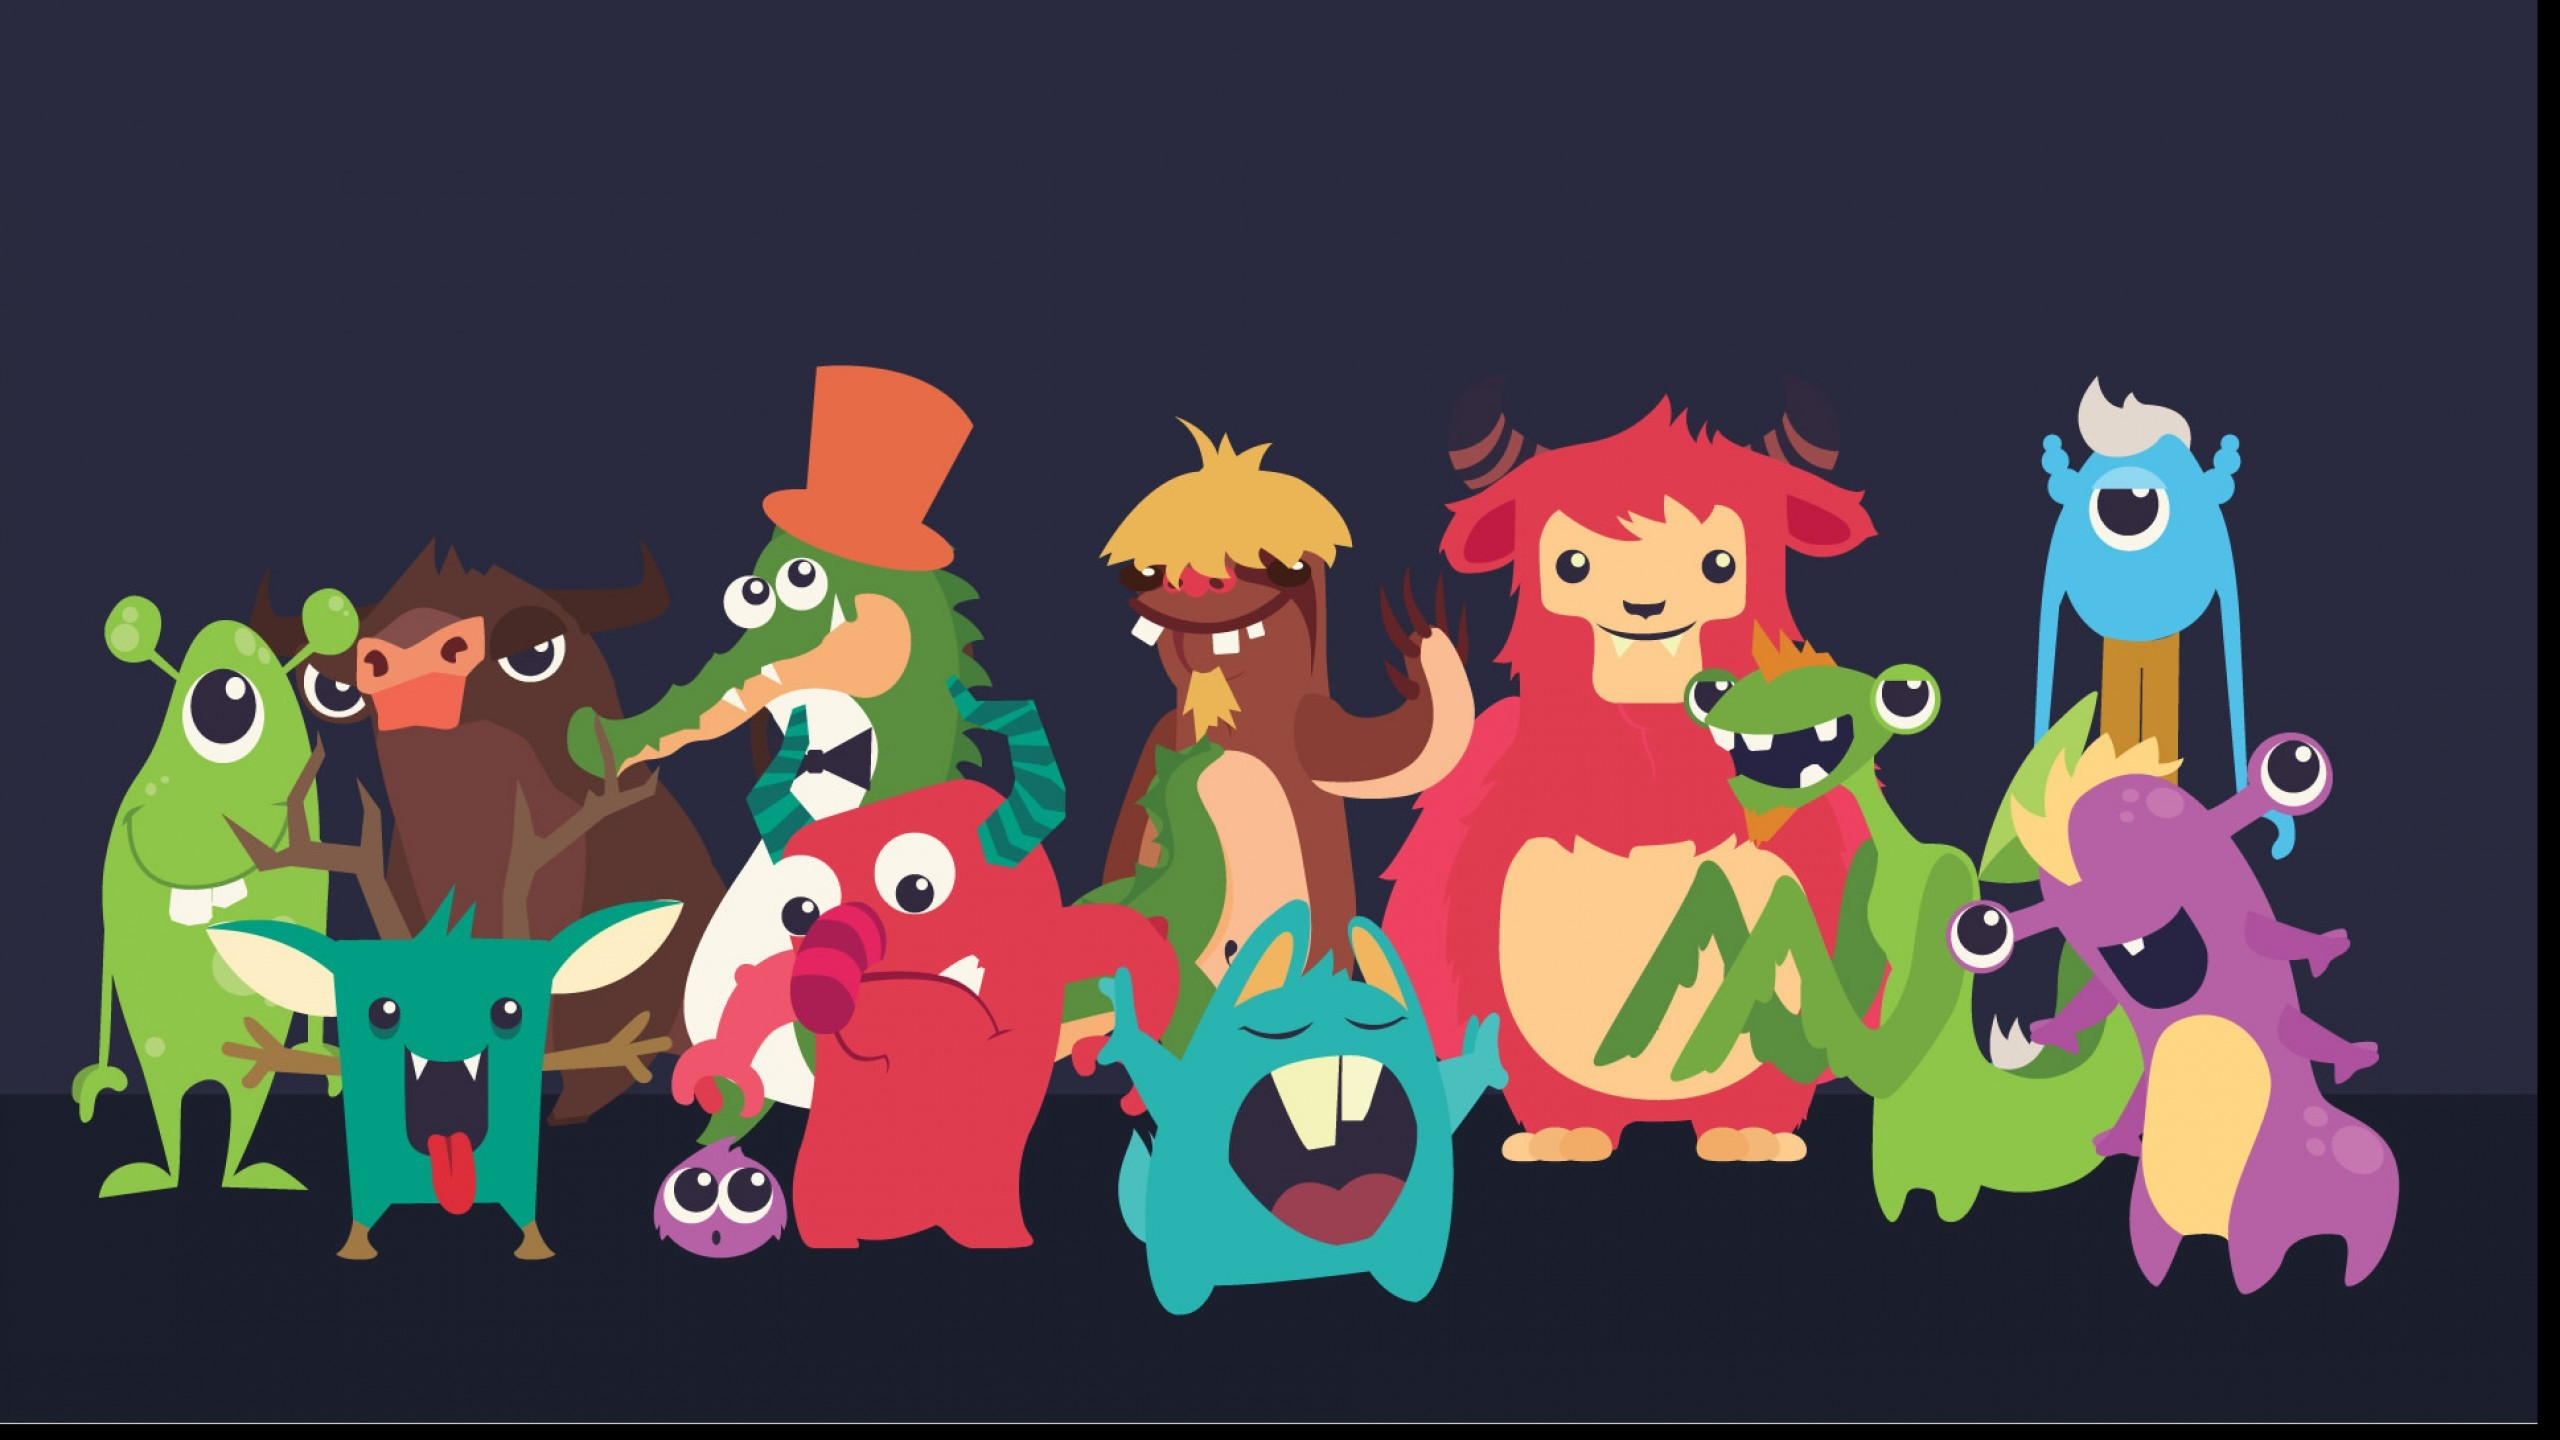 Black Cartoon Wallpaper 55 Image Collections Of: Monster Cute Wallpapers (55+ Images